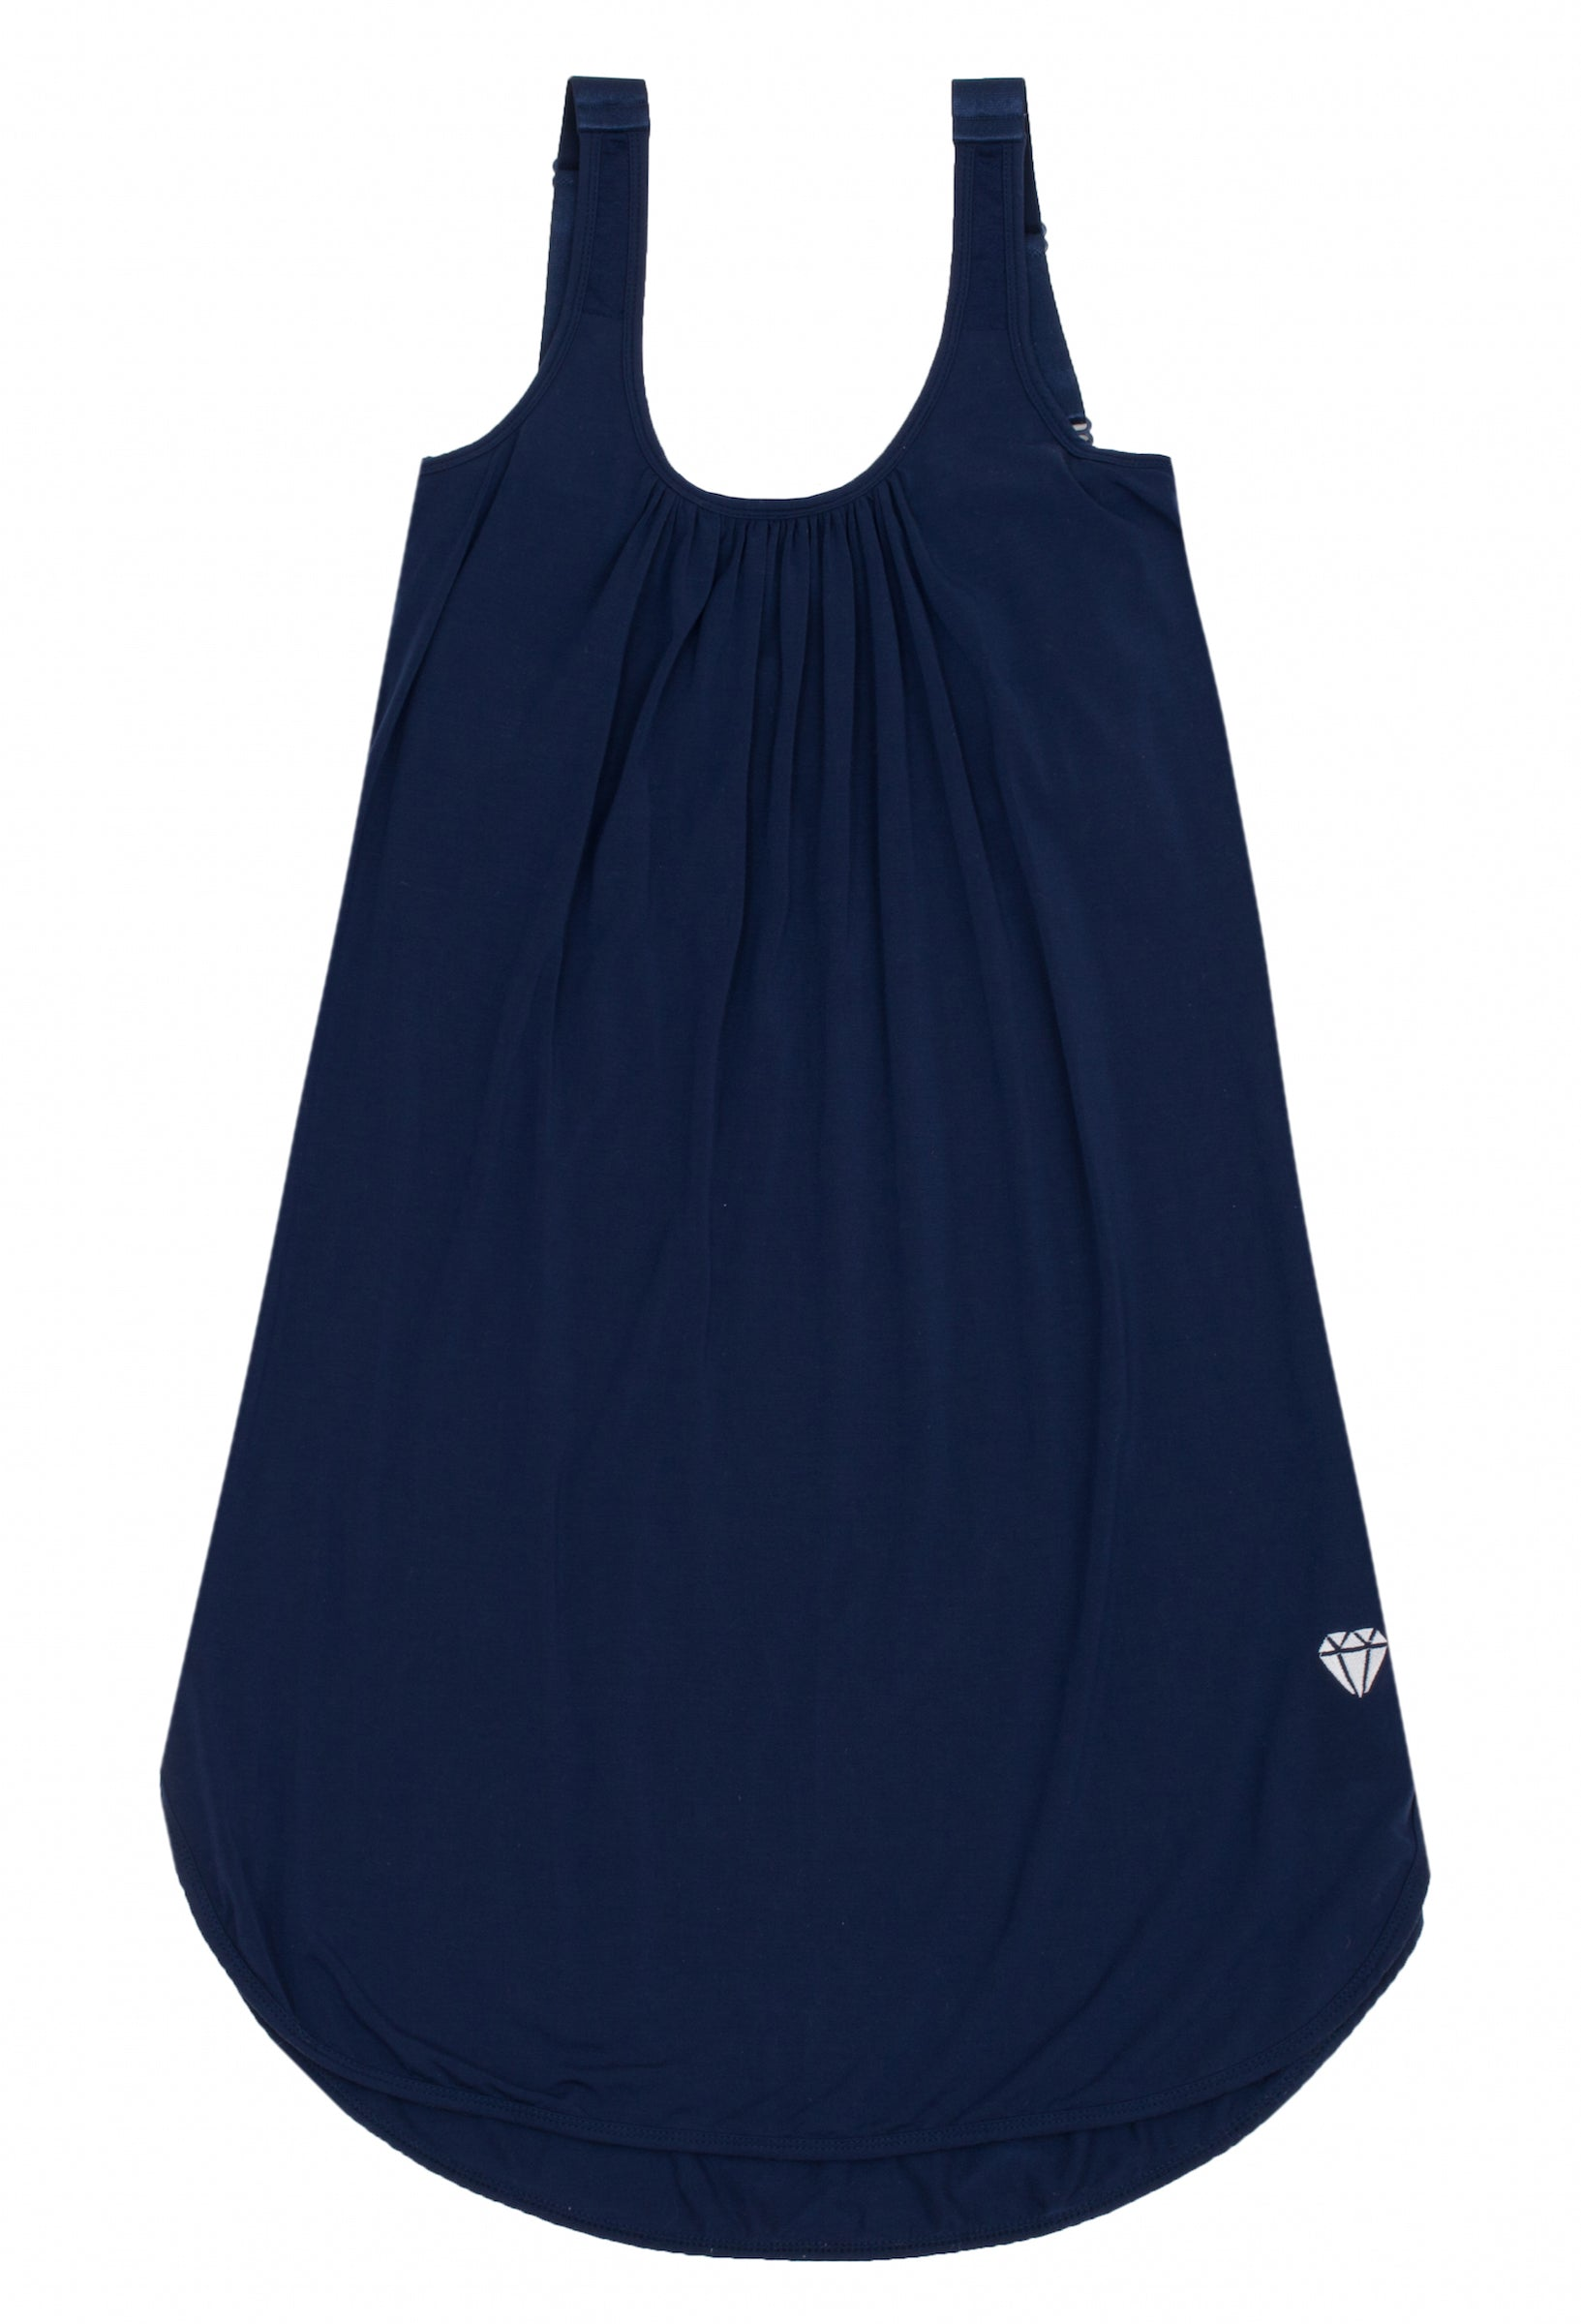 navy nightgown support